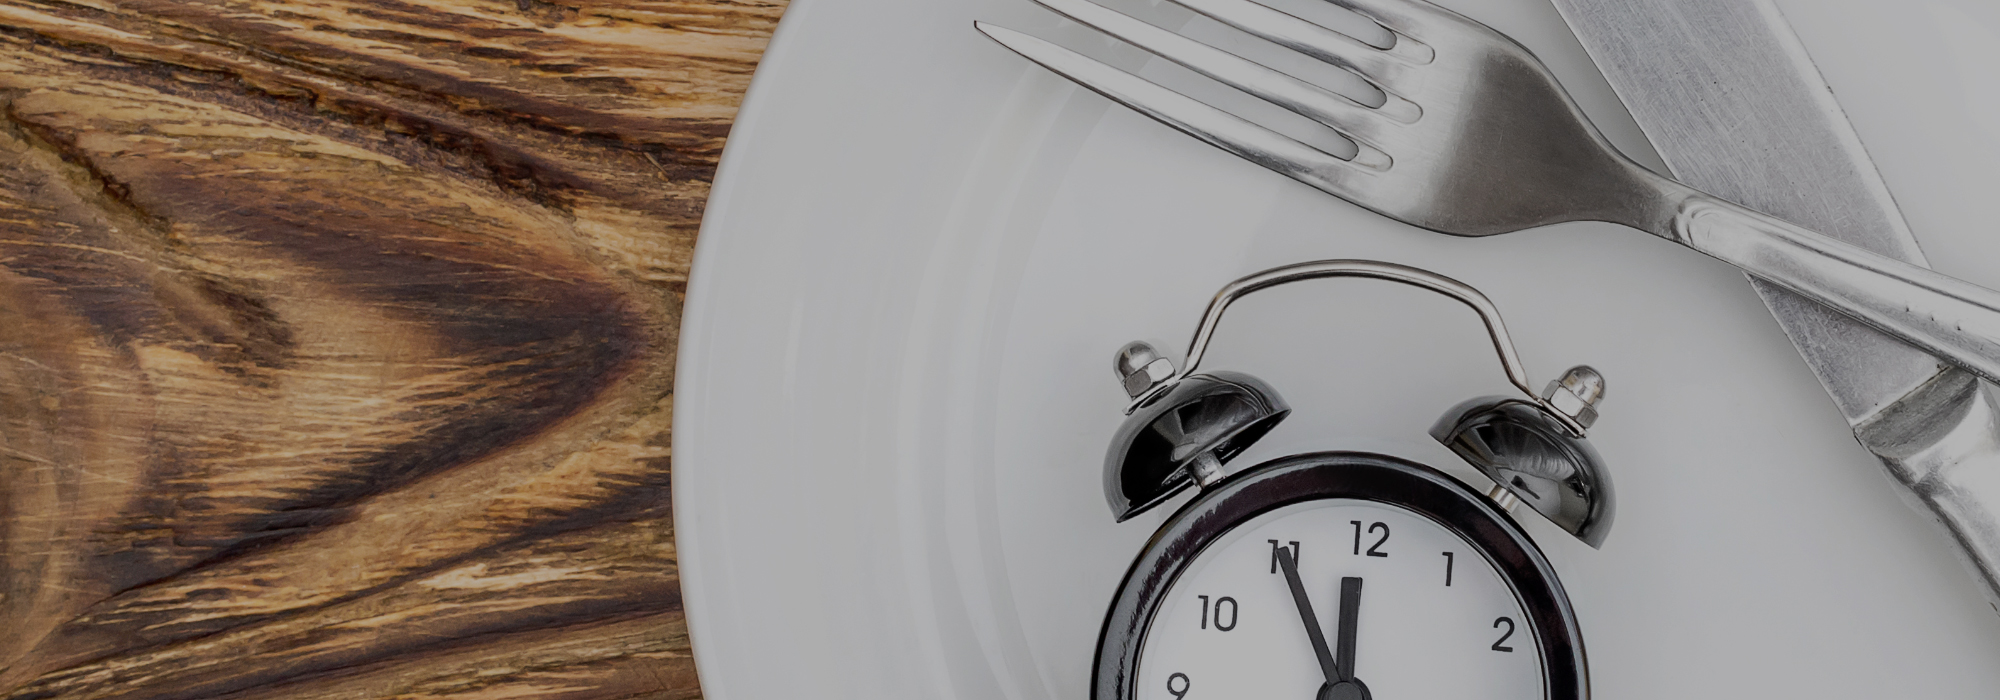 Fasting and Its Effects on the Body